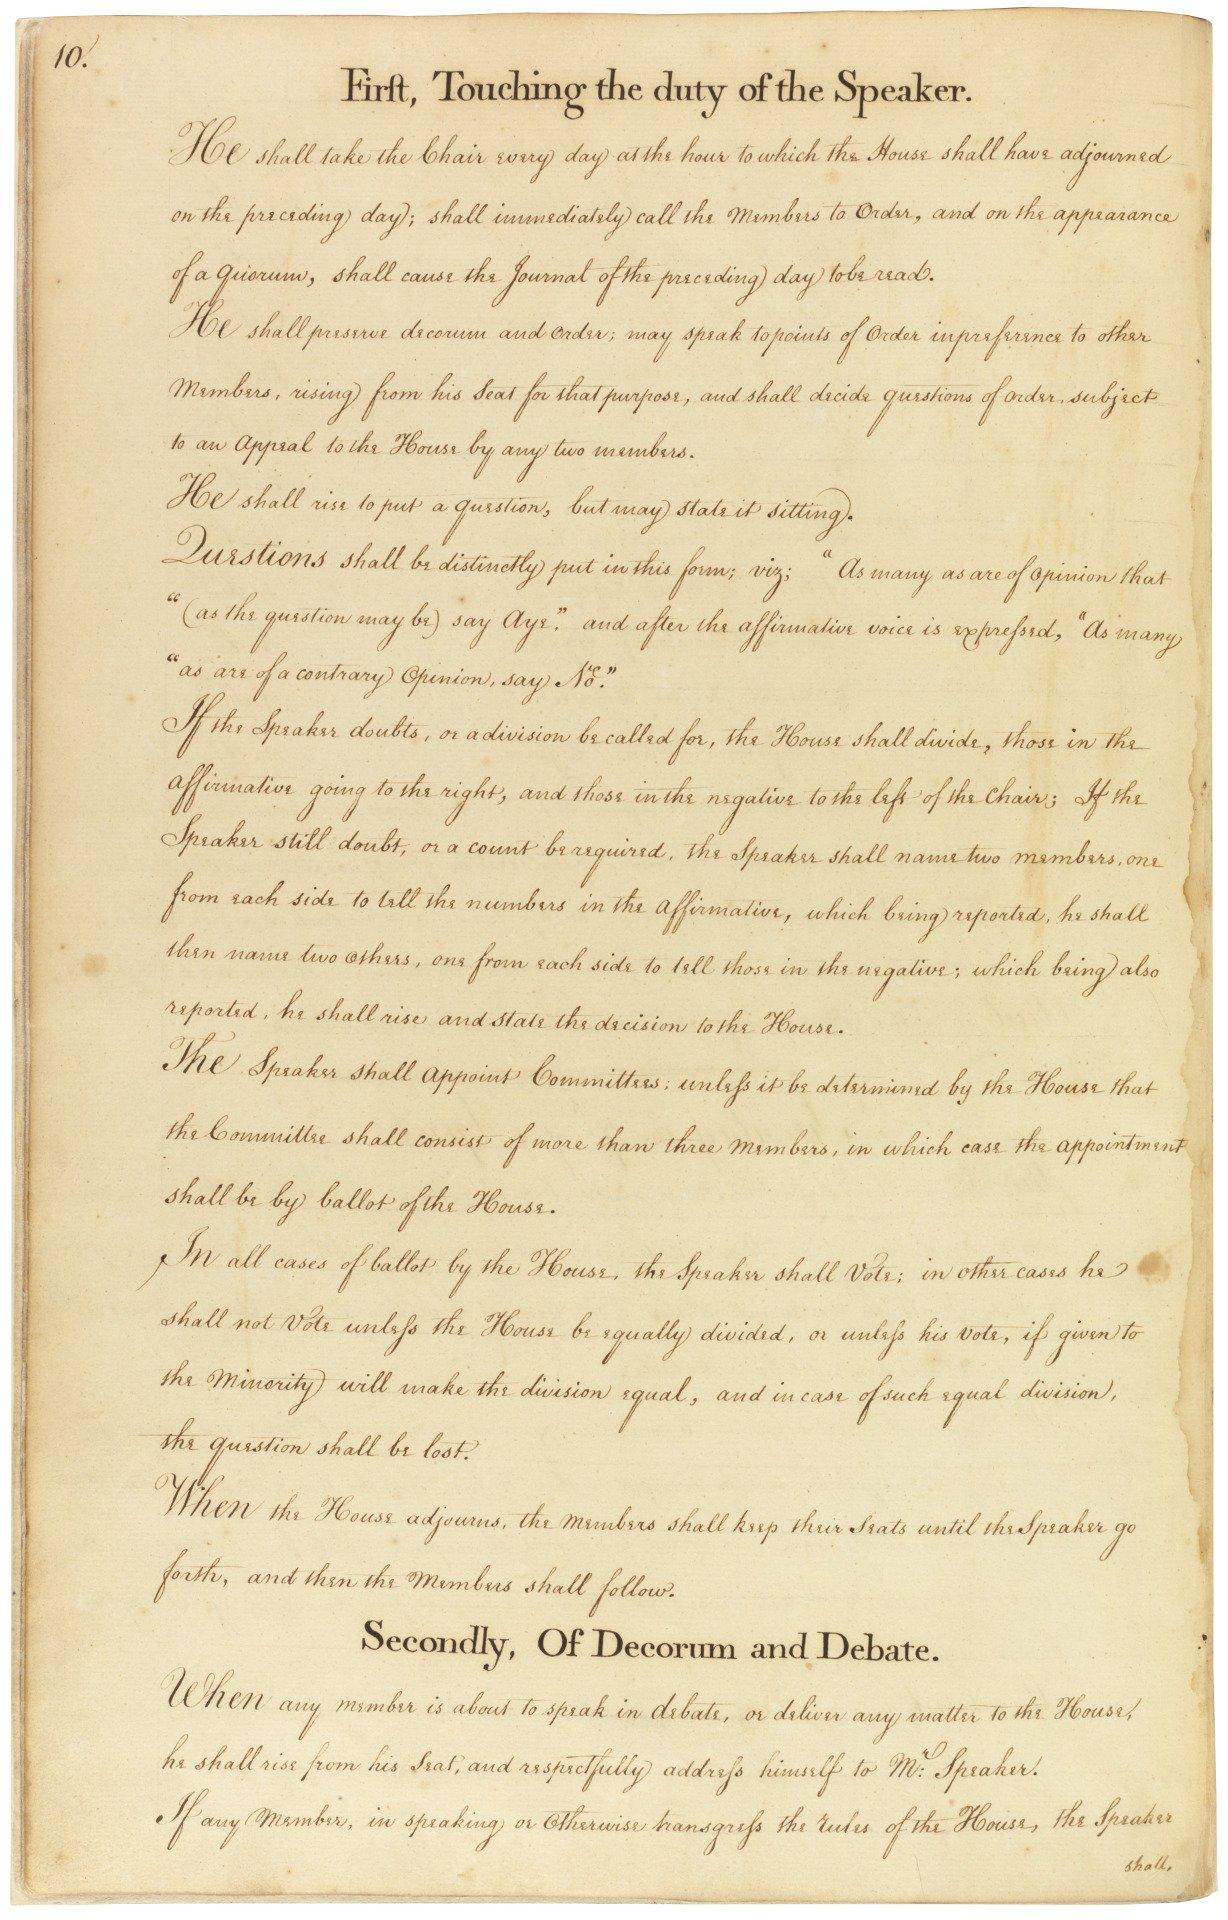 #OTD in 1789 the House set down its rules. See them in #HouseRecords. https://t.co/cqcGsb0sB9 https://t.co/AfNIeuAujM